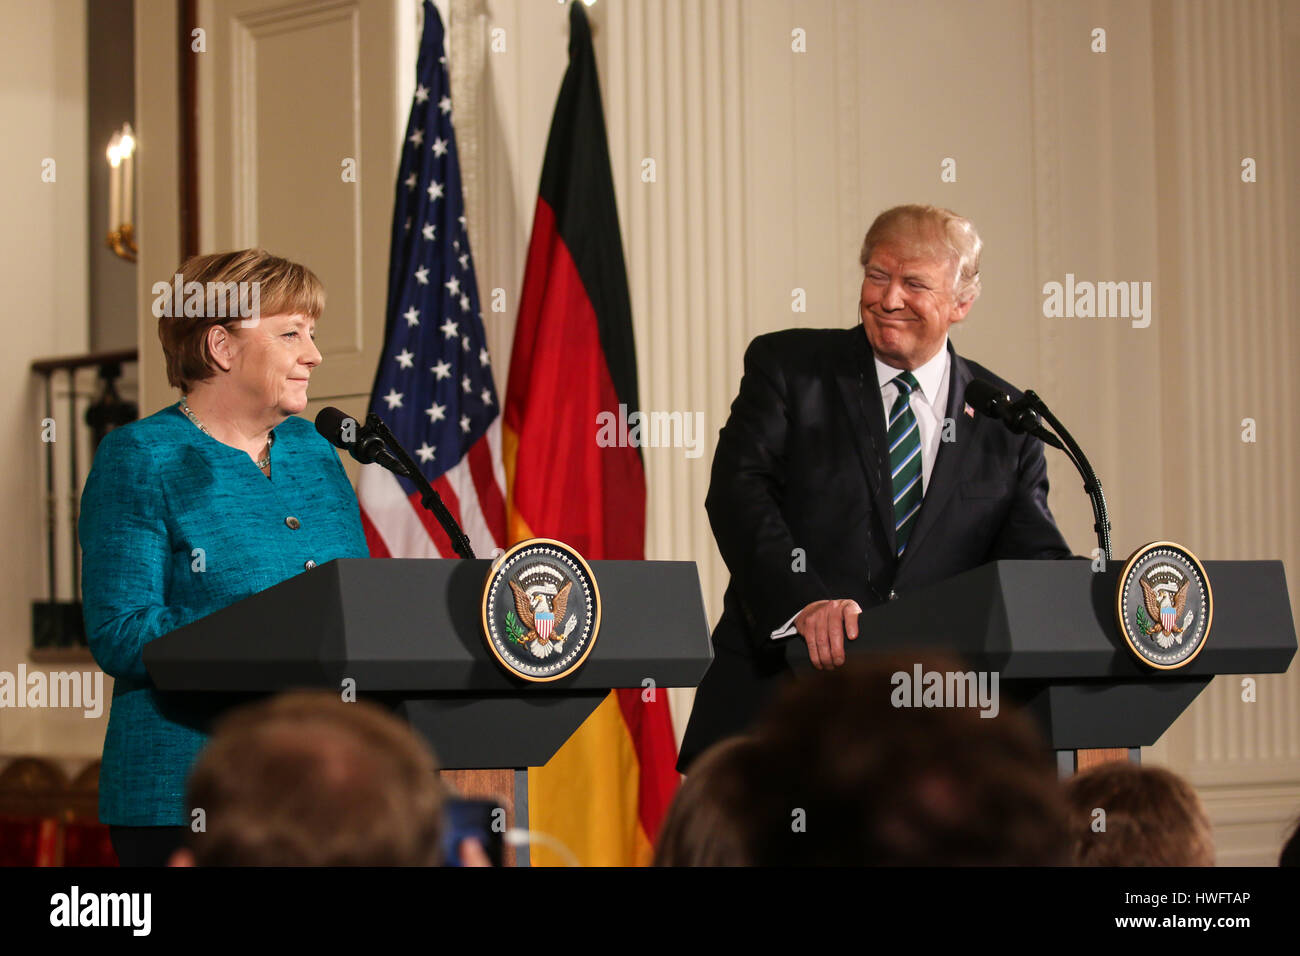 German Chancellor Angela Merkel visits Washington, D.C. on Friday, March 17, 2017 and meets with U.S. President - Stock Image